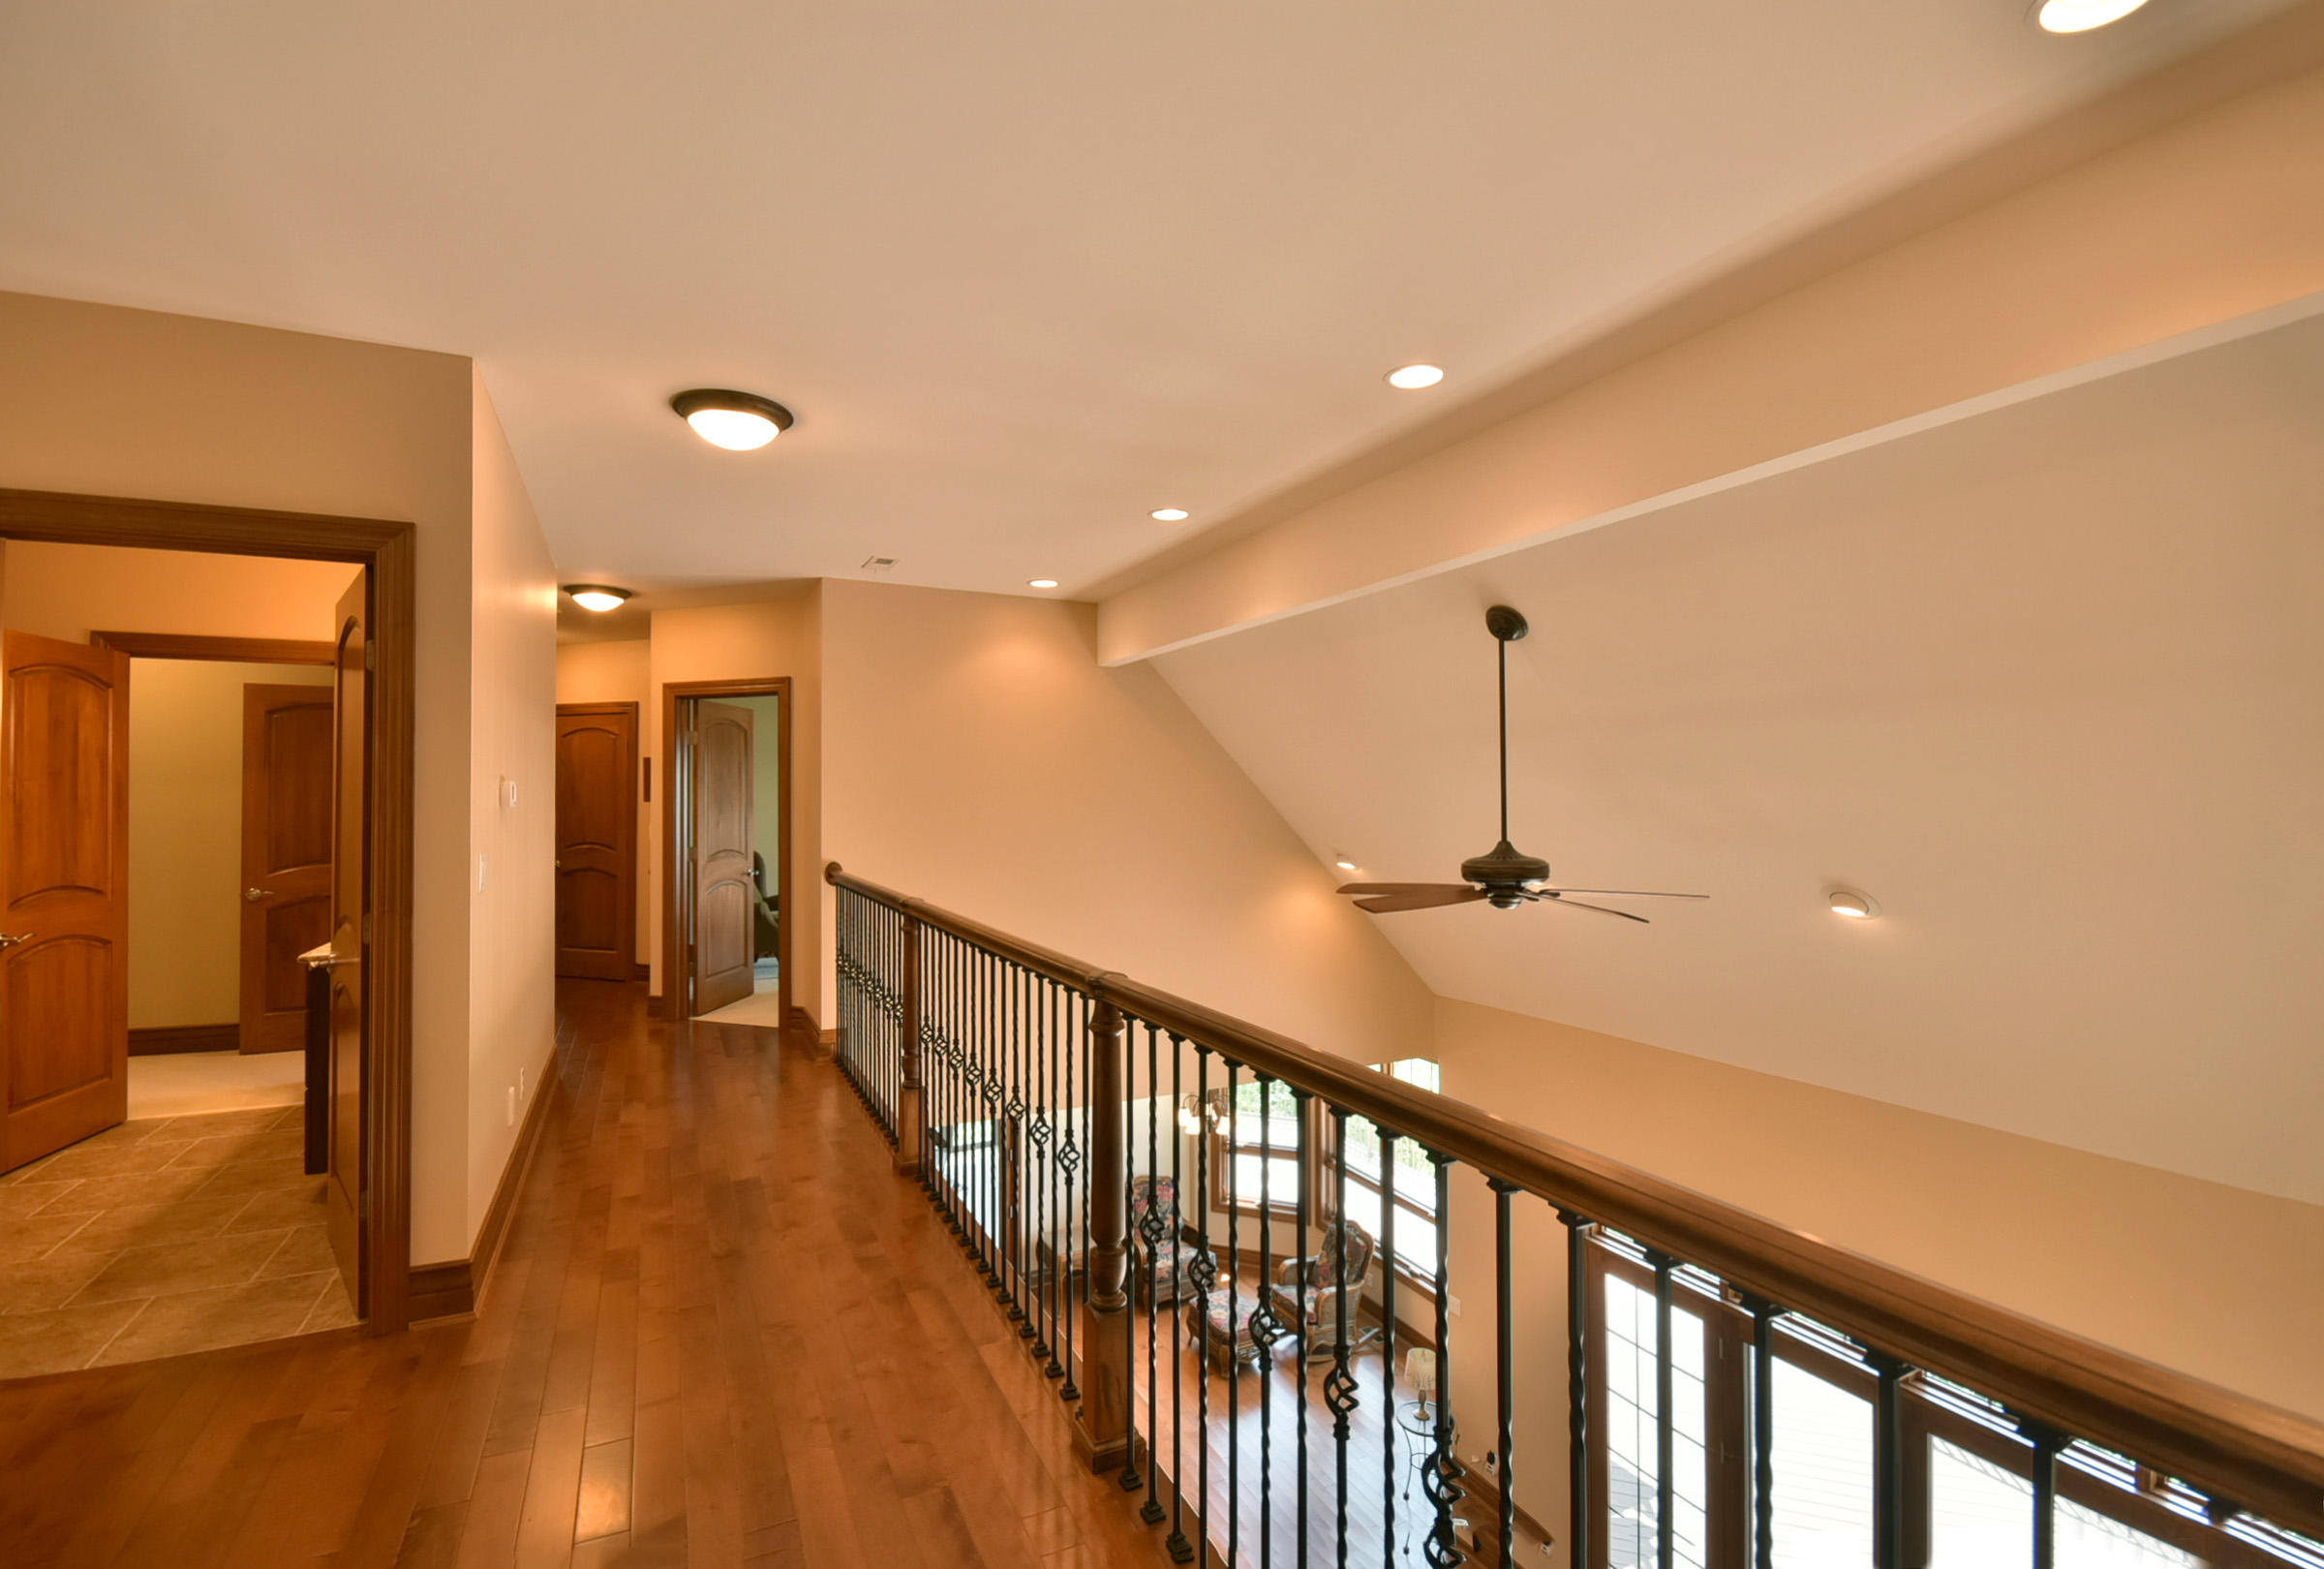 4641 Russell Brothers Rd: